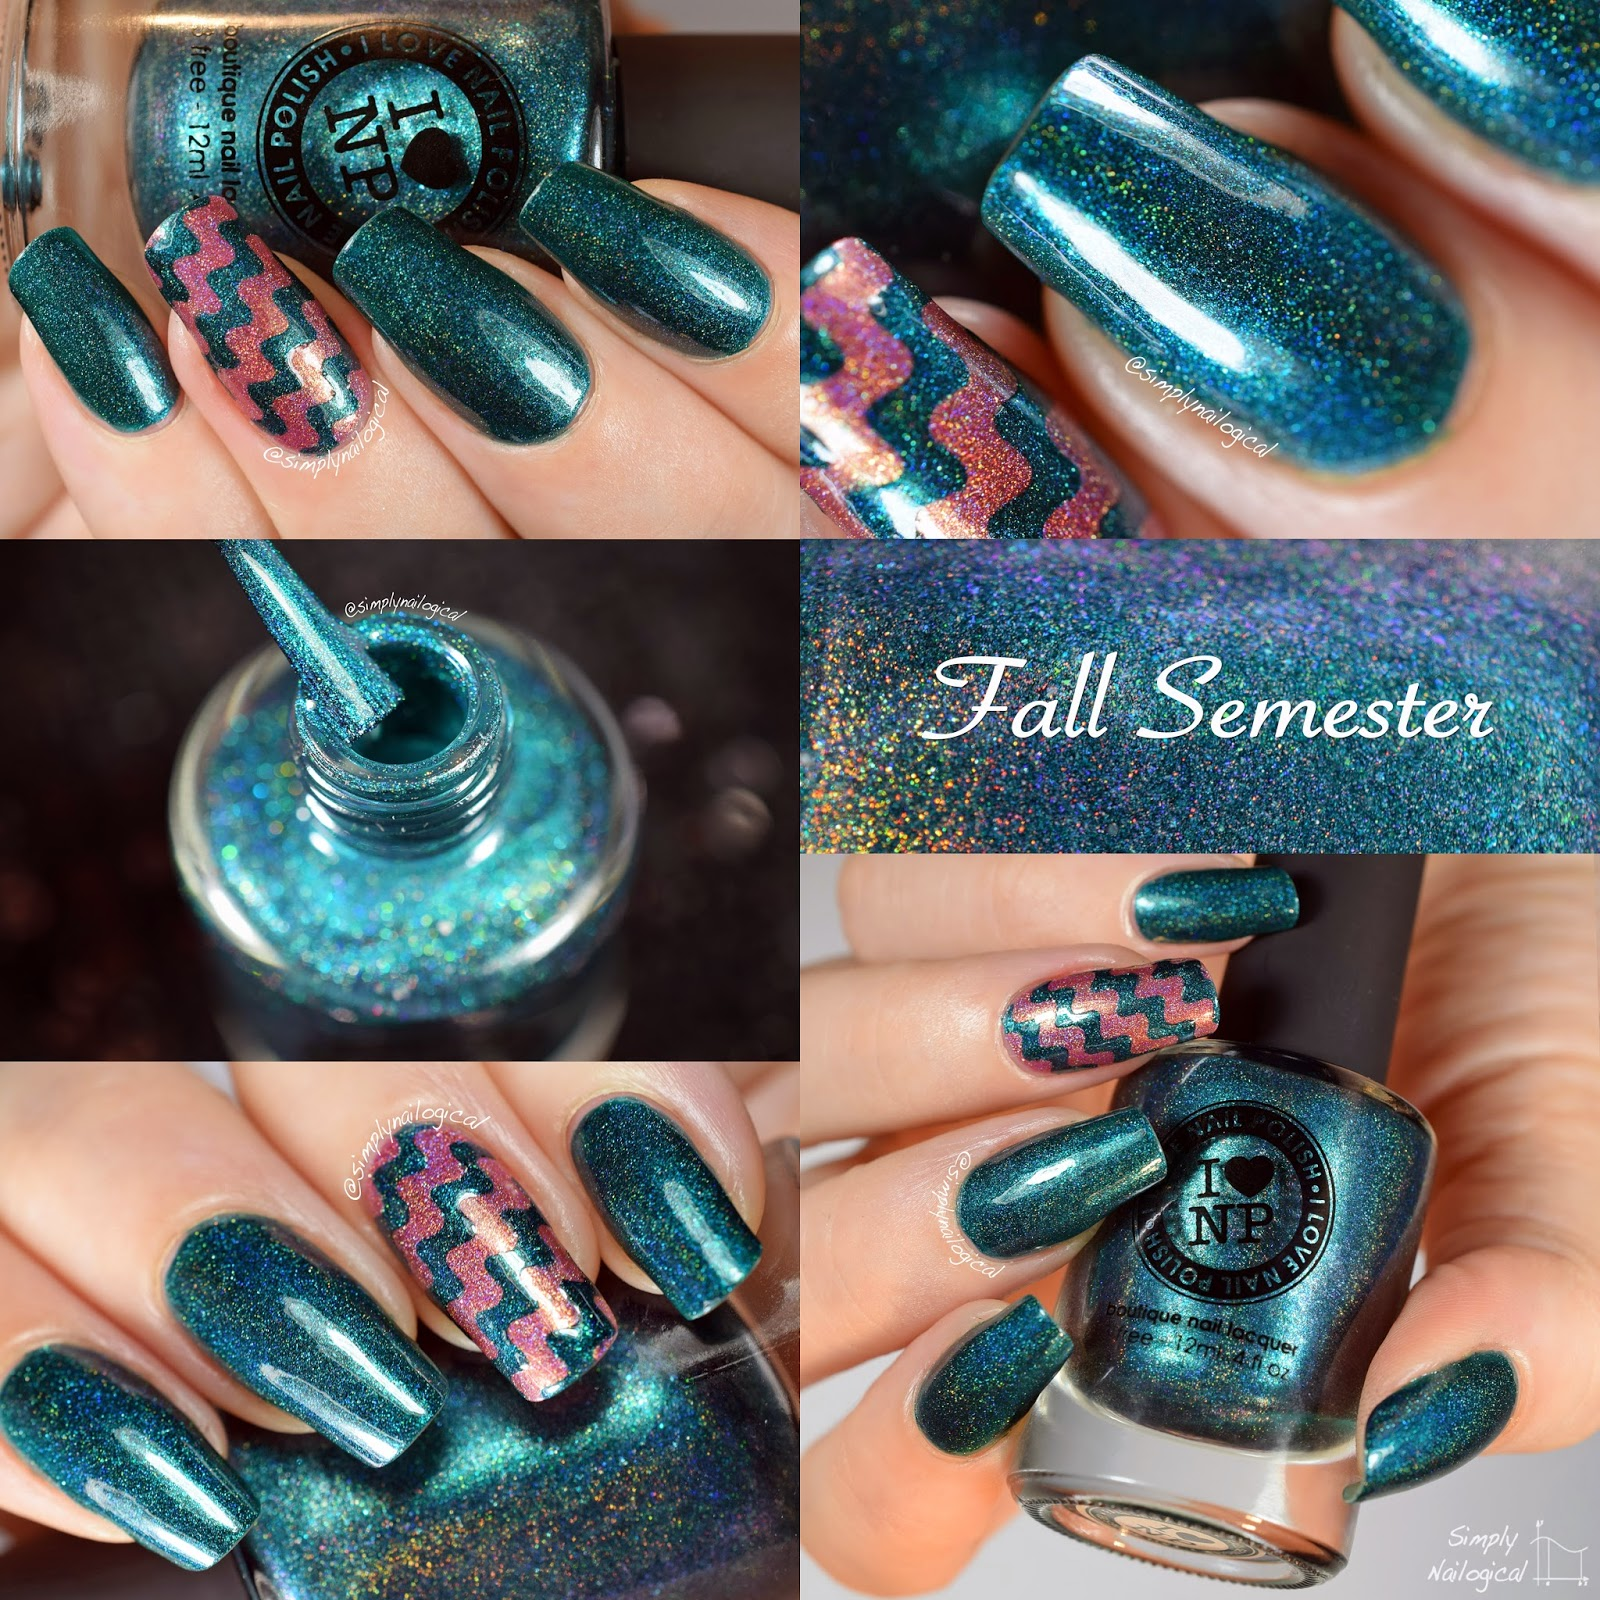 Fall Semester - ILNP Fall 2014 collection swatch